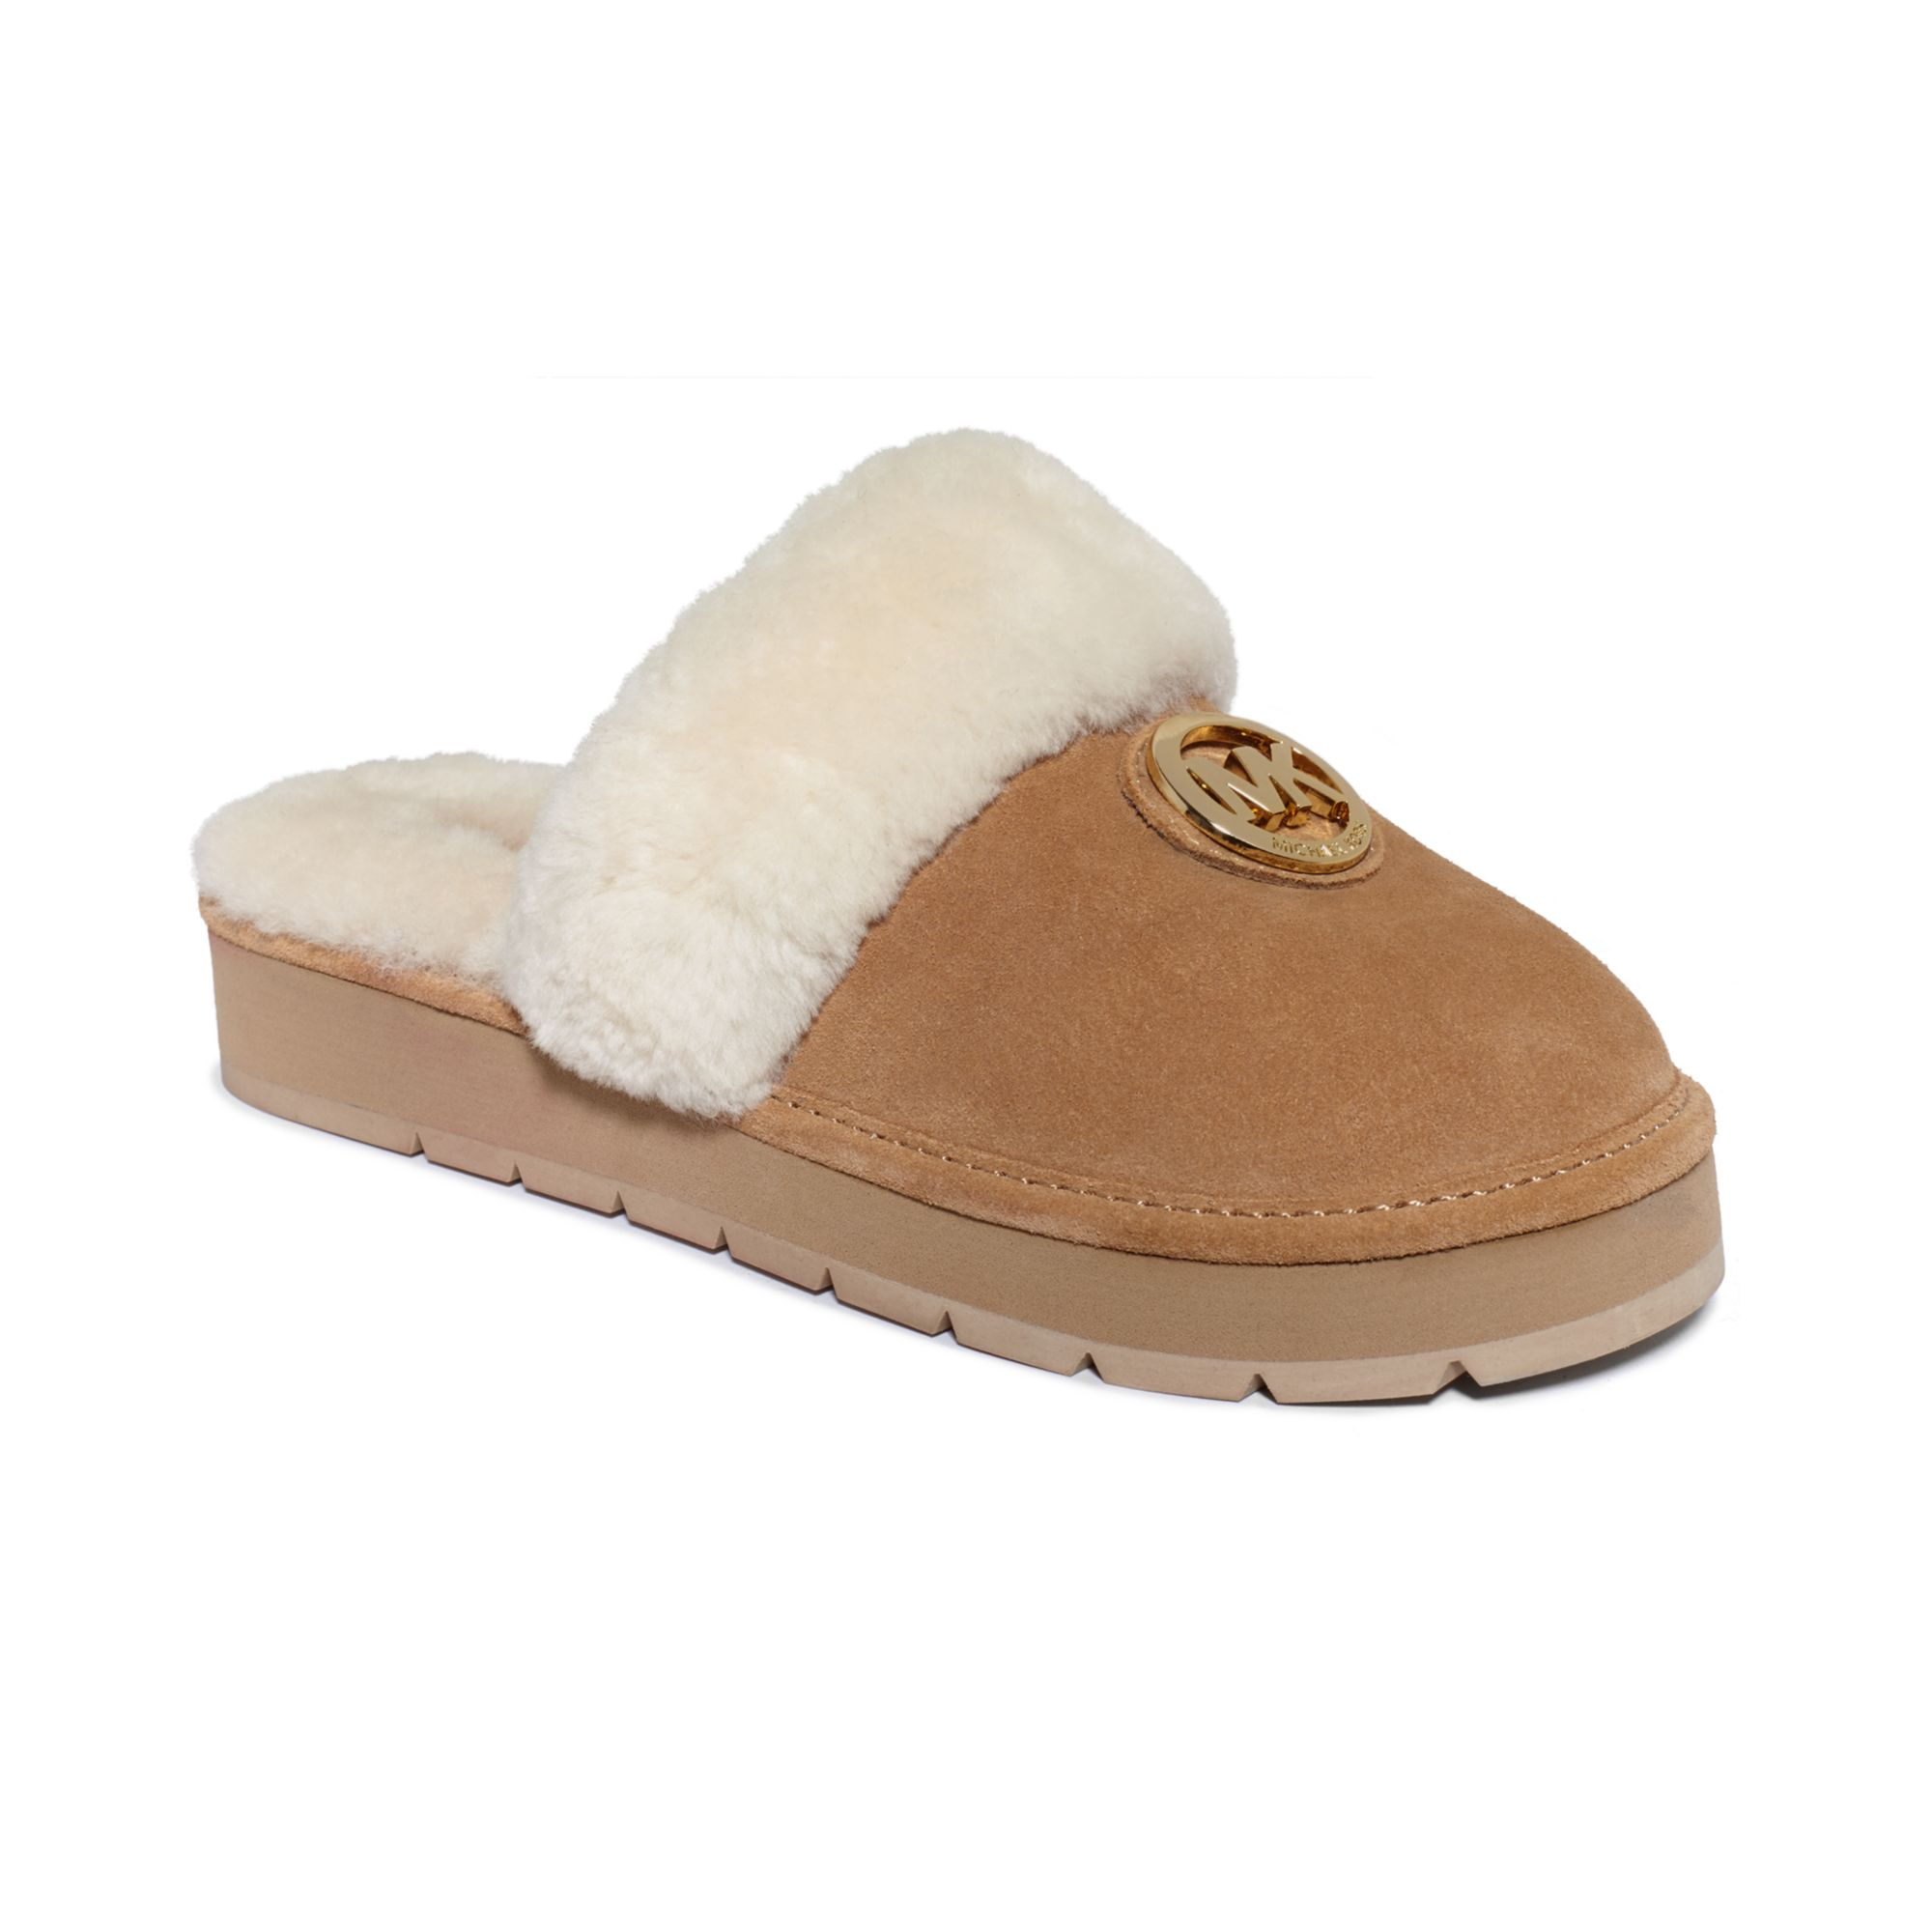 Michael Kors Winter Fur Slippers in Brown (Walnut Suede/Shearling) | Lyst